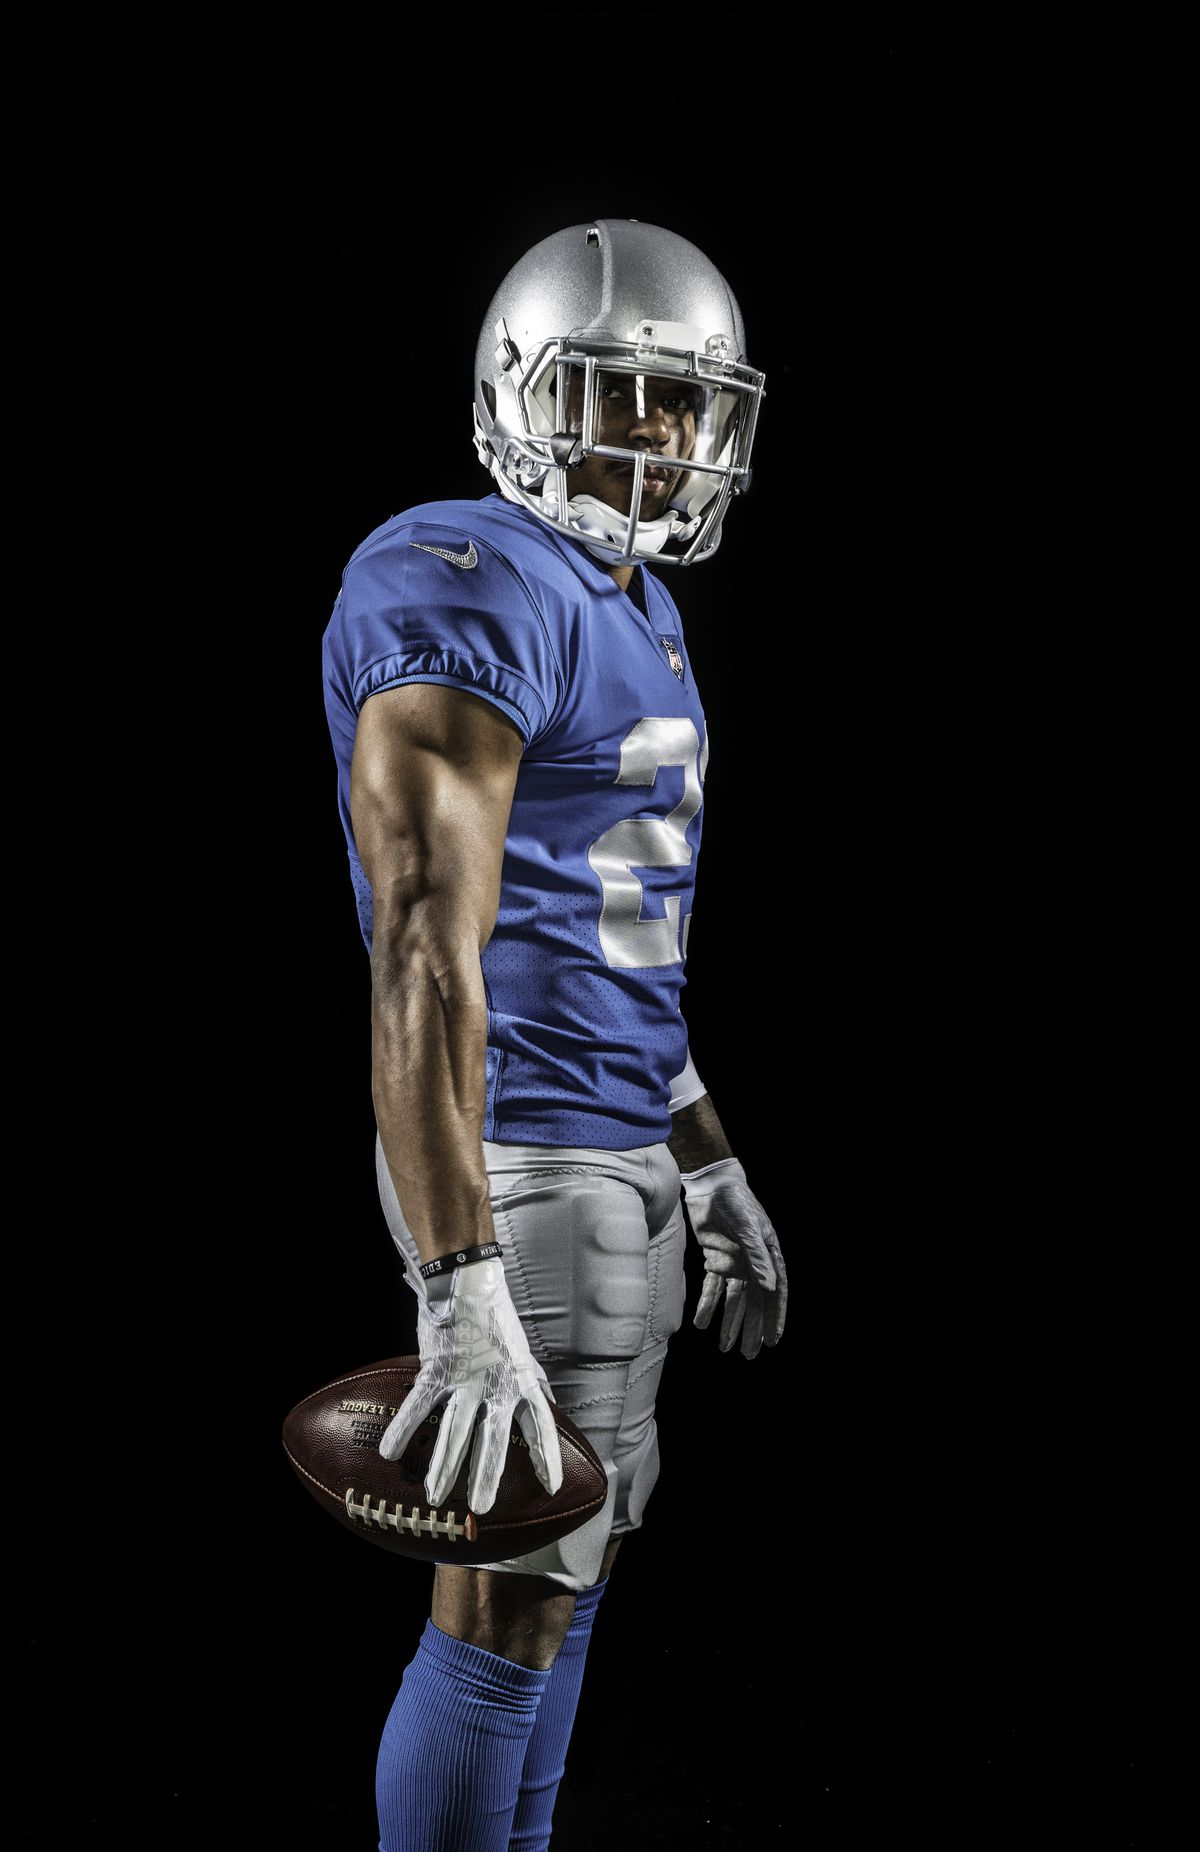 detroit lions throwback jersey